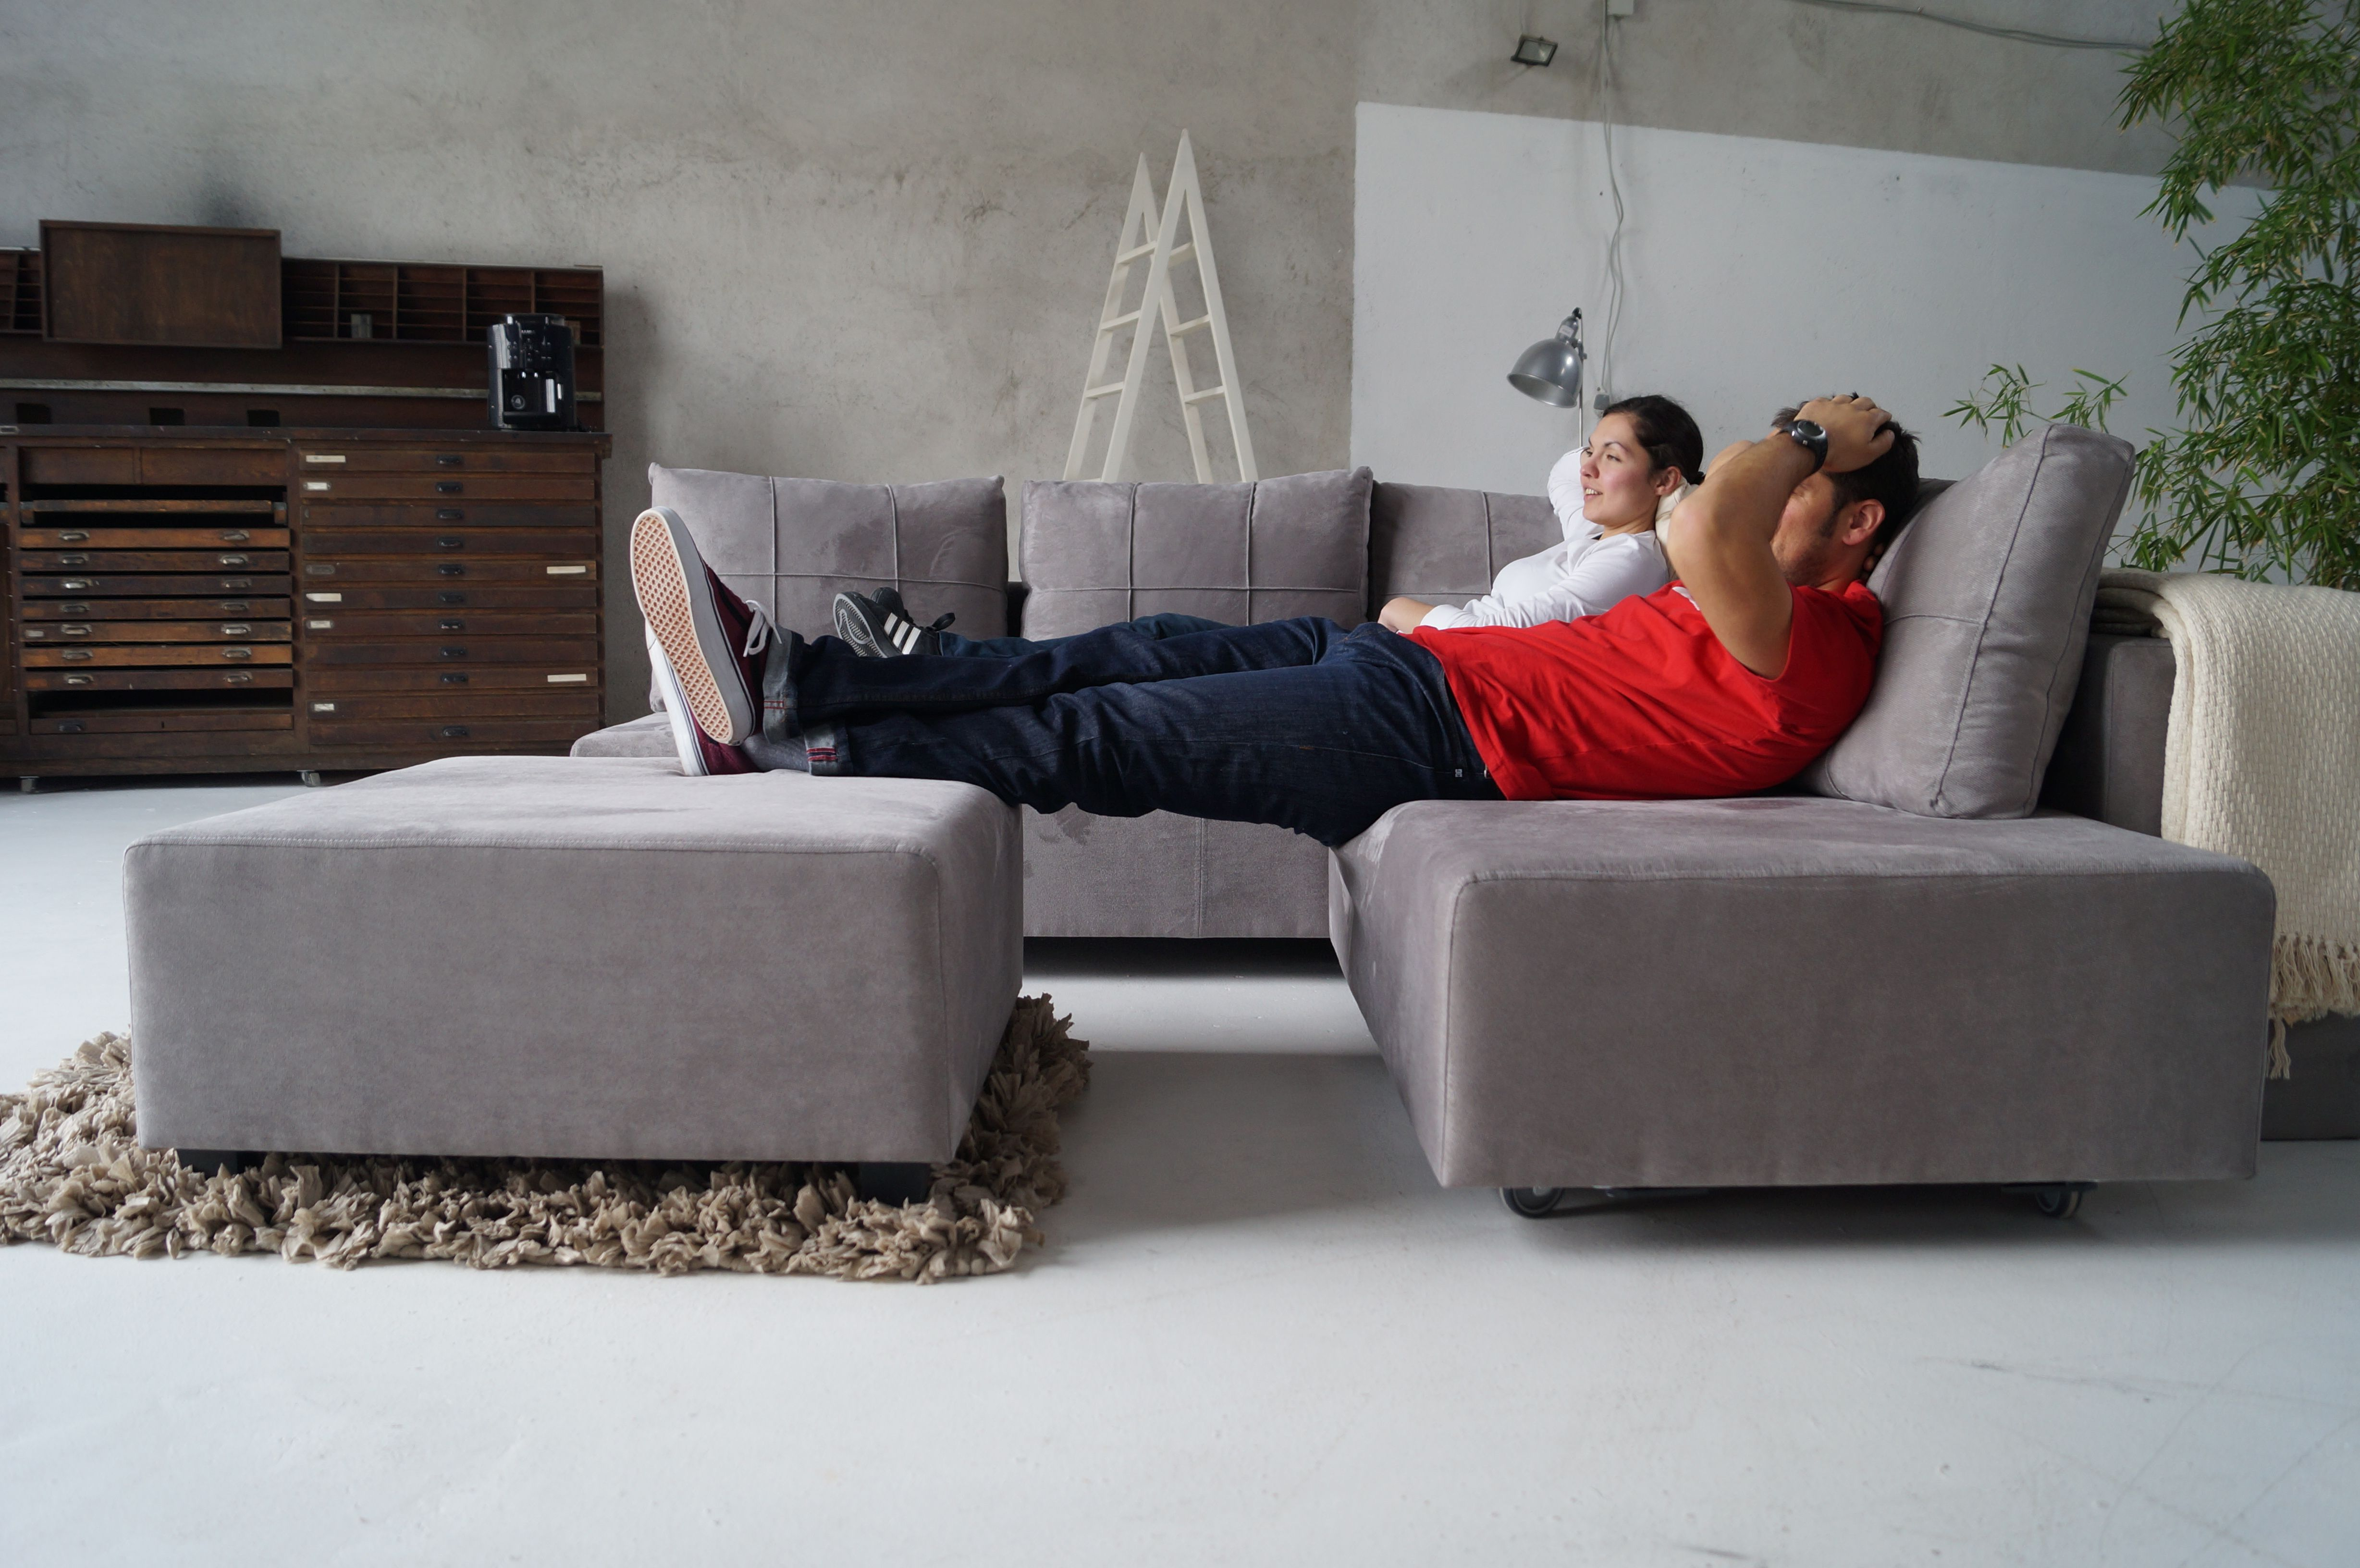 Gemini A Ecksofa Short Of Storage Or Of Space Gemini Z Sofa Bed Has It All For Only